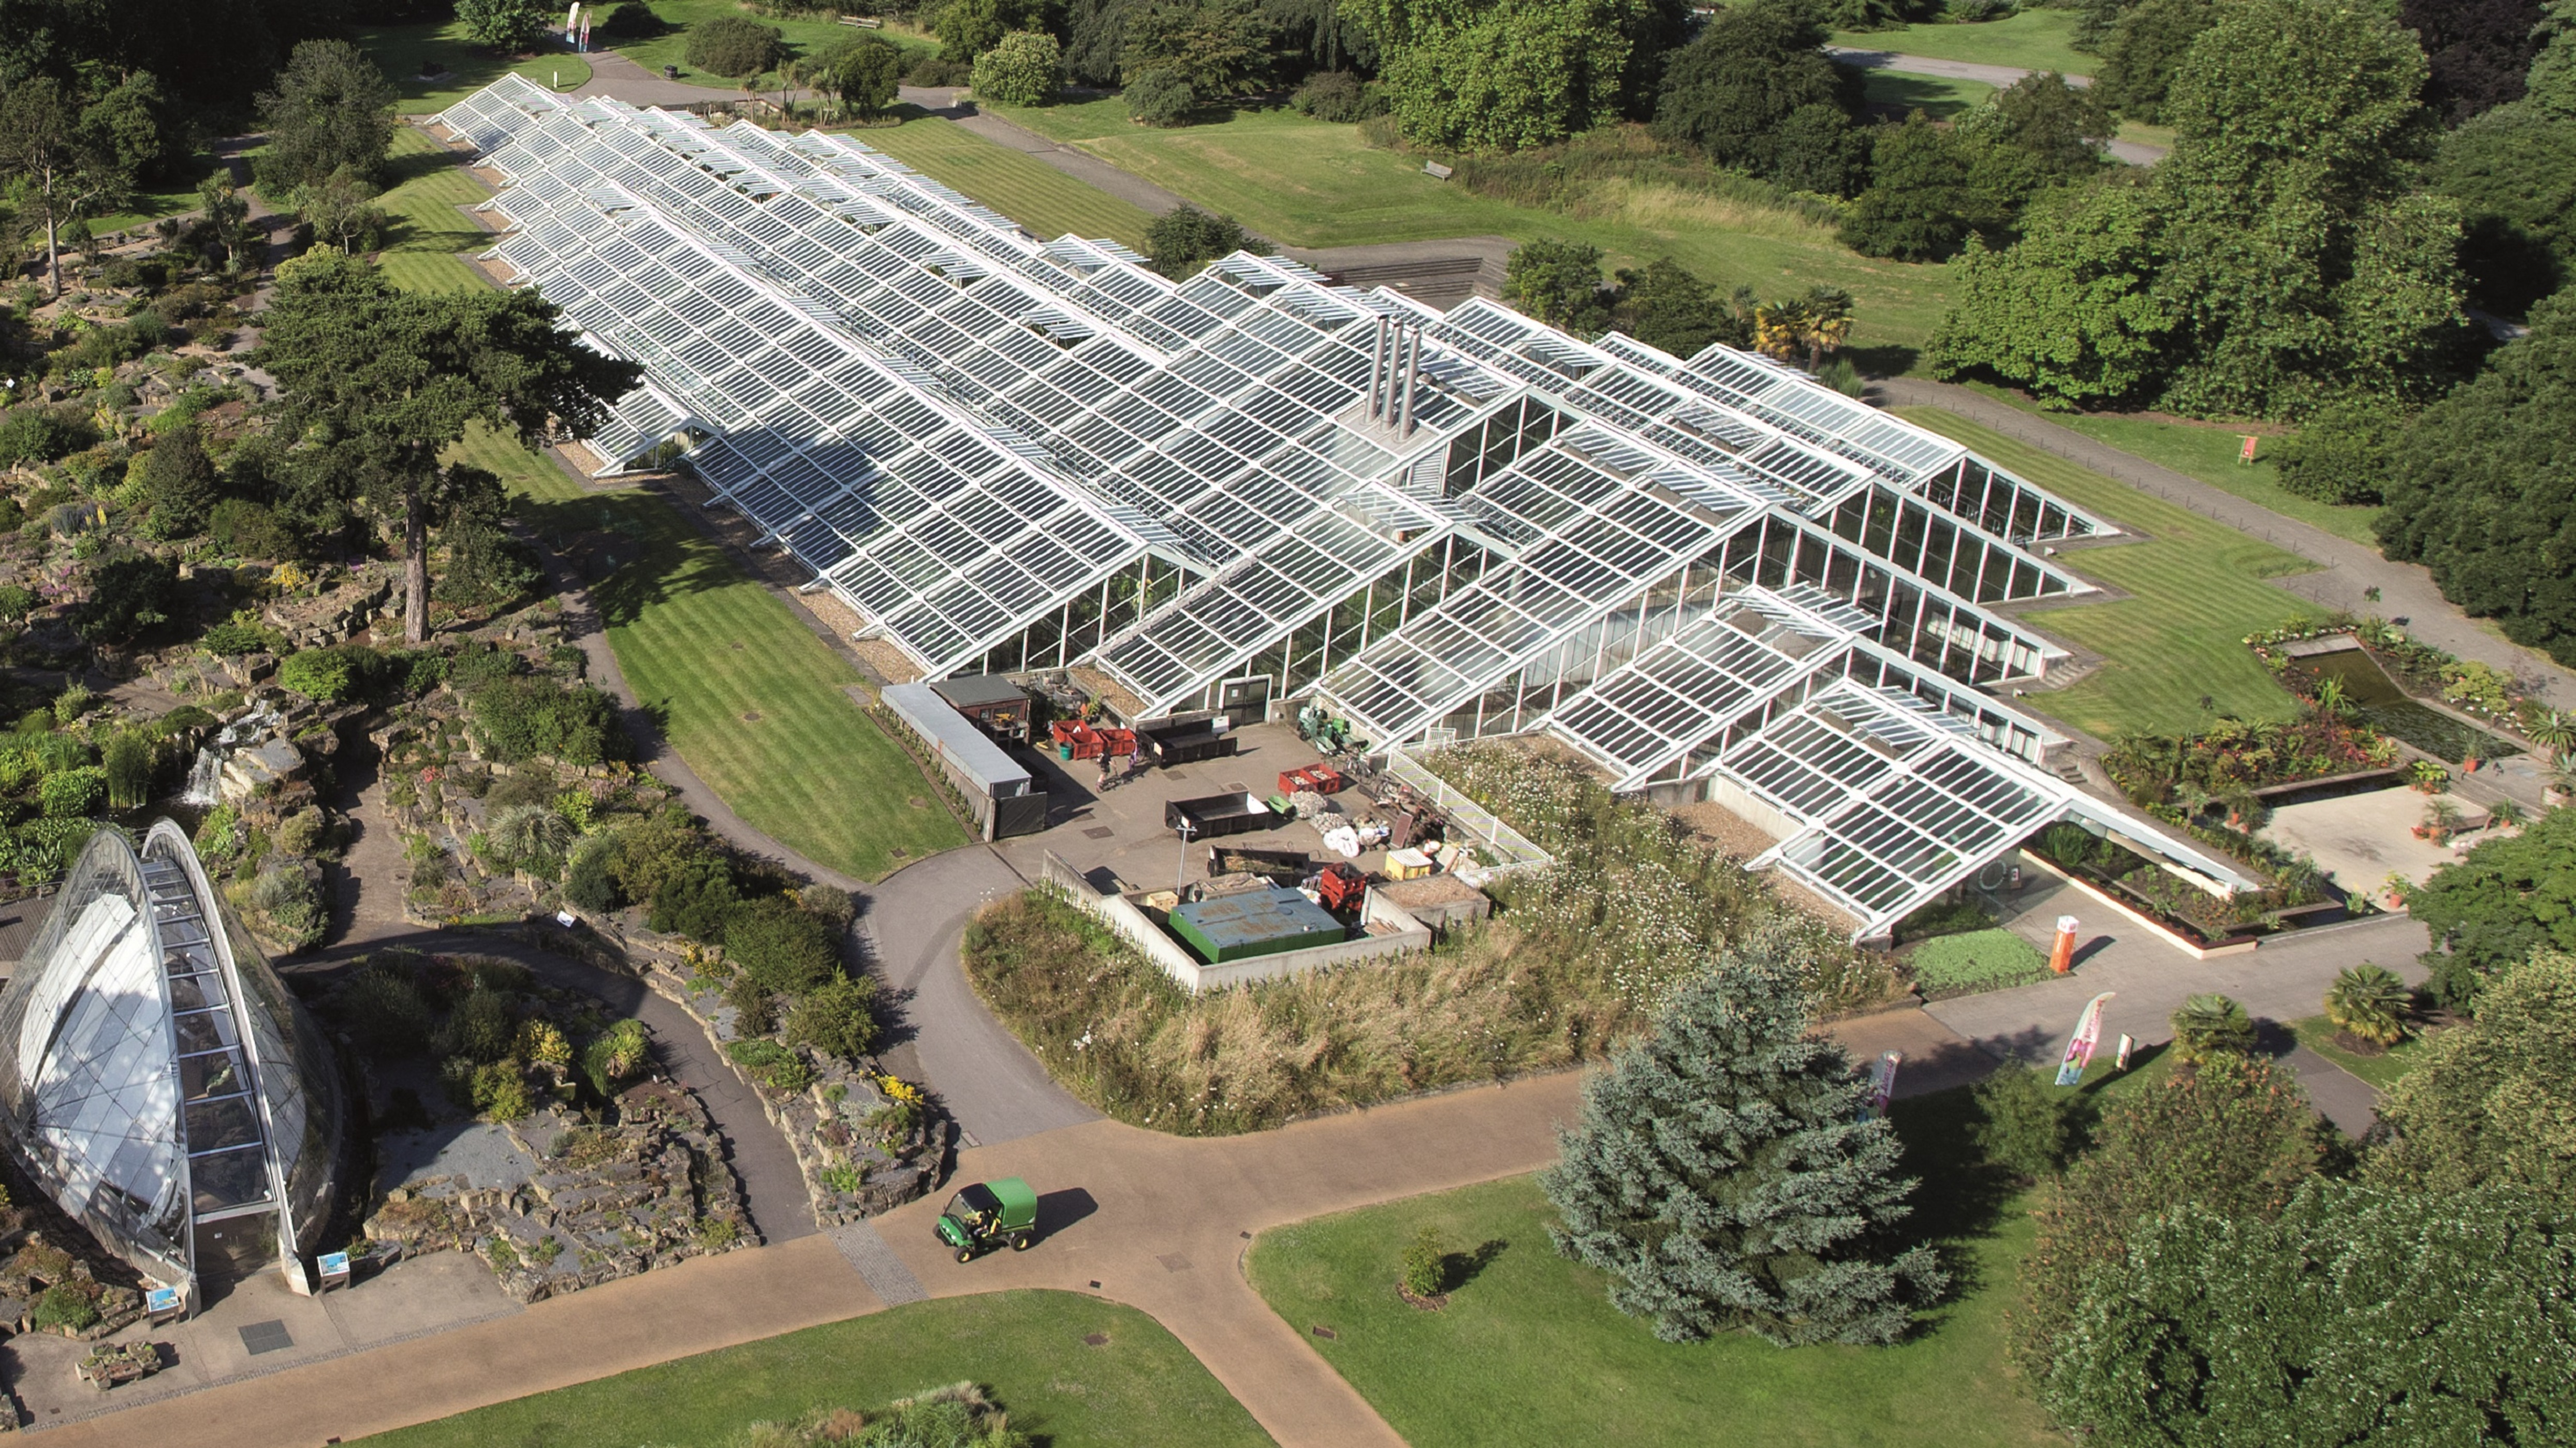 Aerial view of Princess of Wales Conservatory